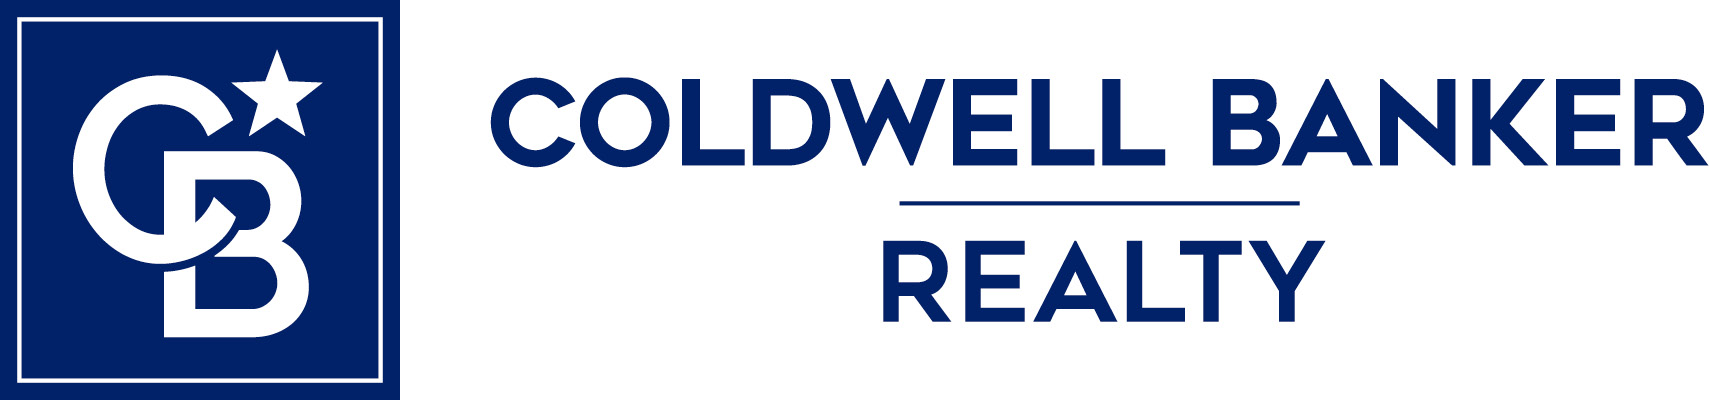 Company Logo Coldwell Banker